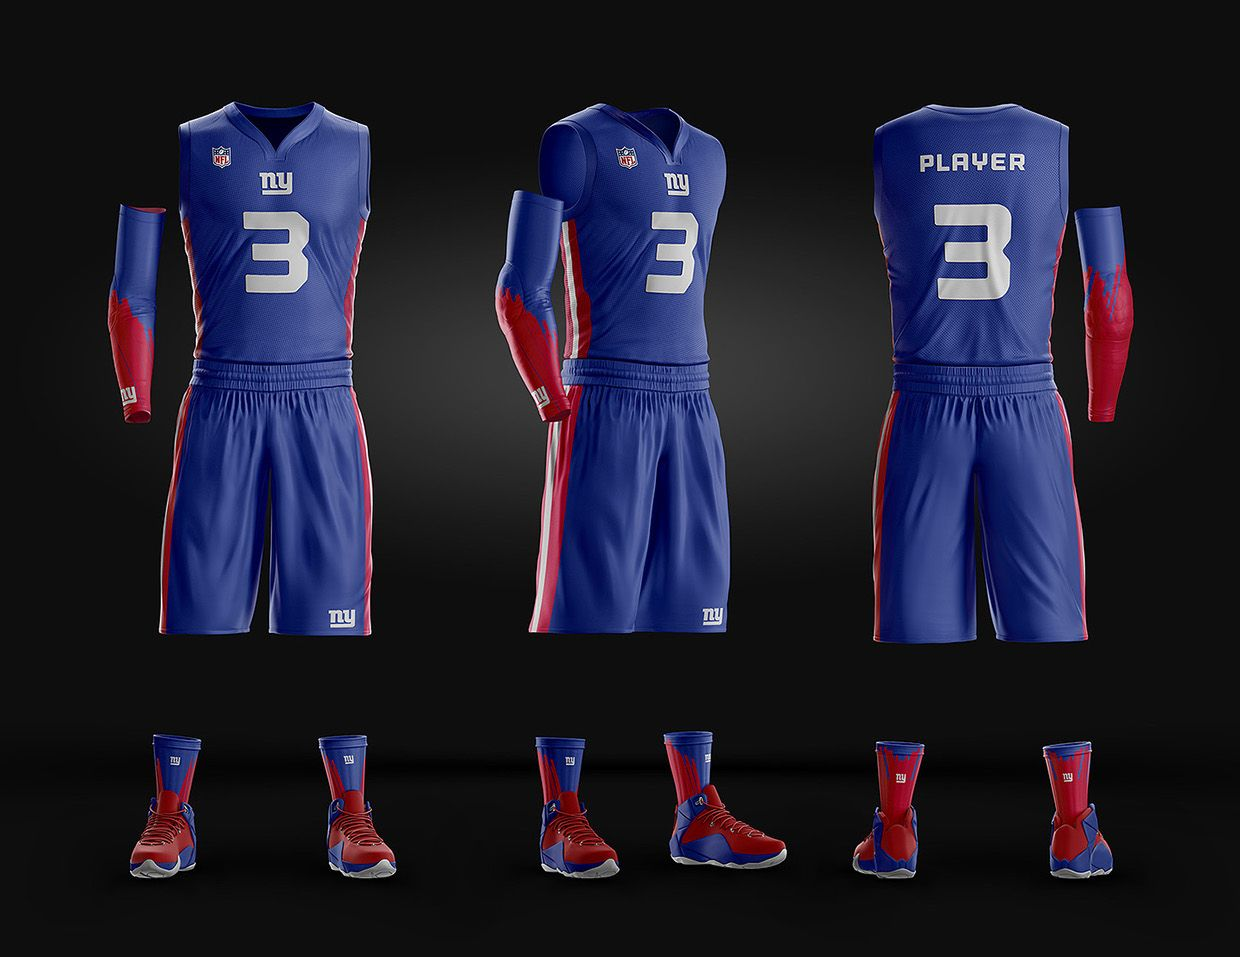 Download Basketball Uniform Jersey Psd Template On Wacom Gallery Basketball Uniforms Design Basketball Uniforms Jersey